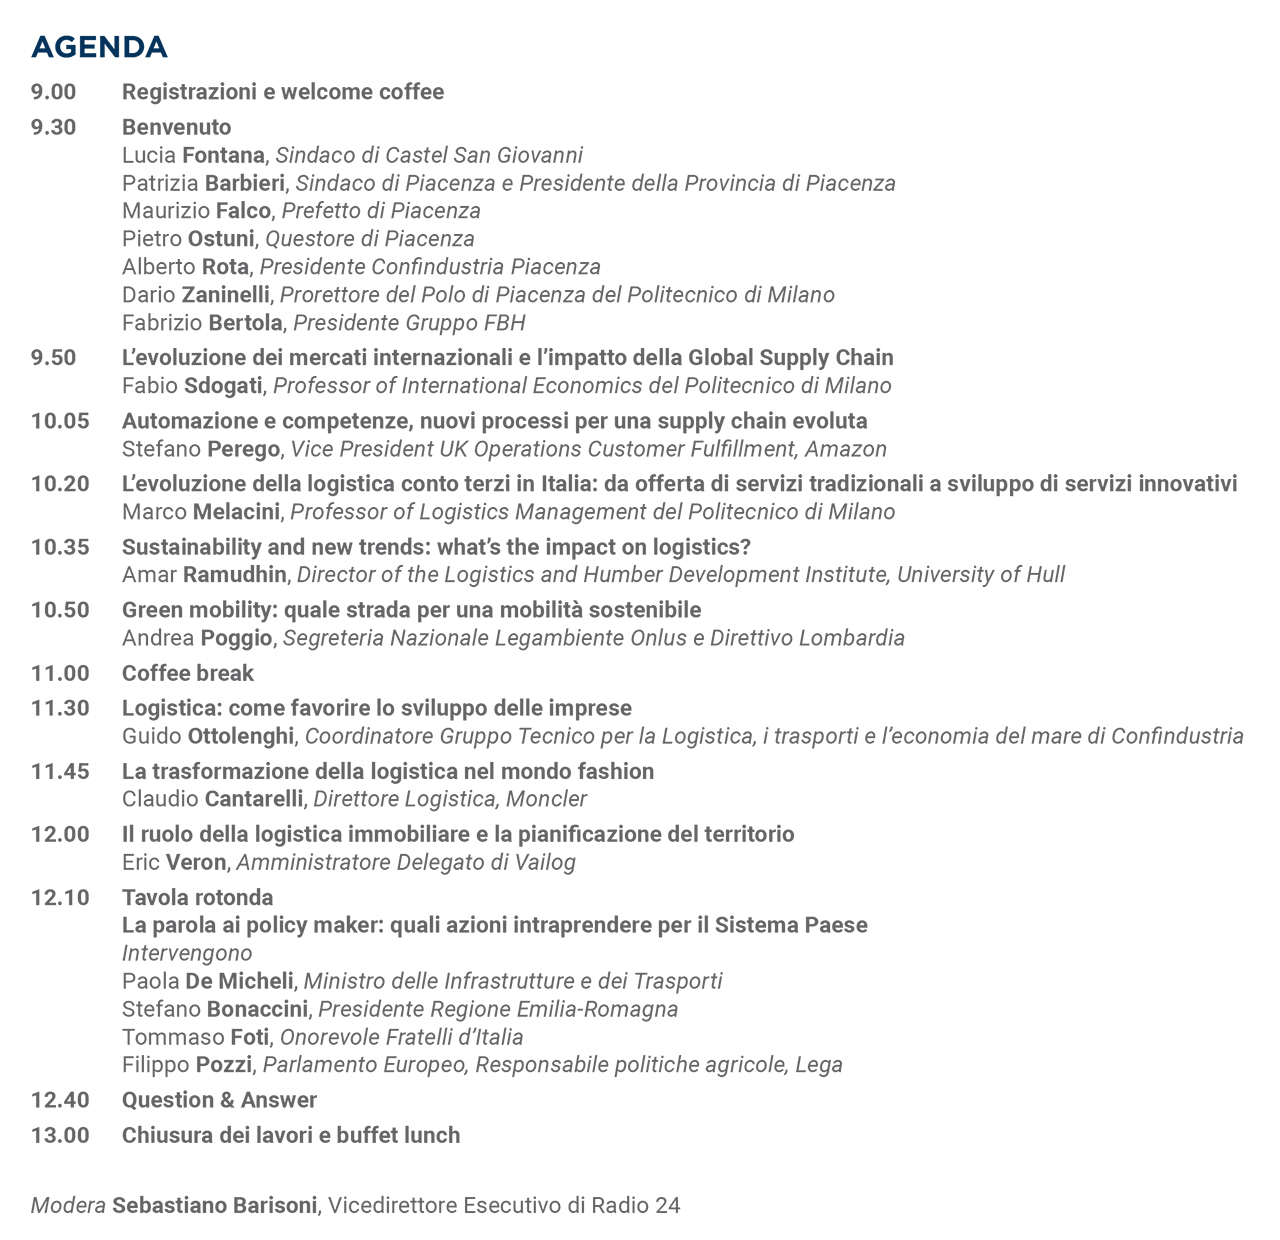 agenda_eventologistica-1